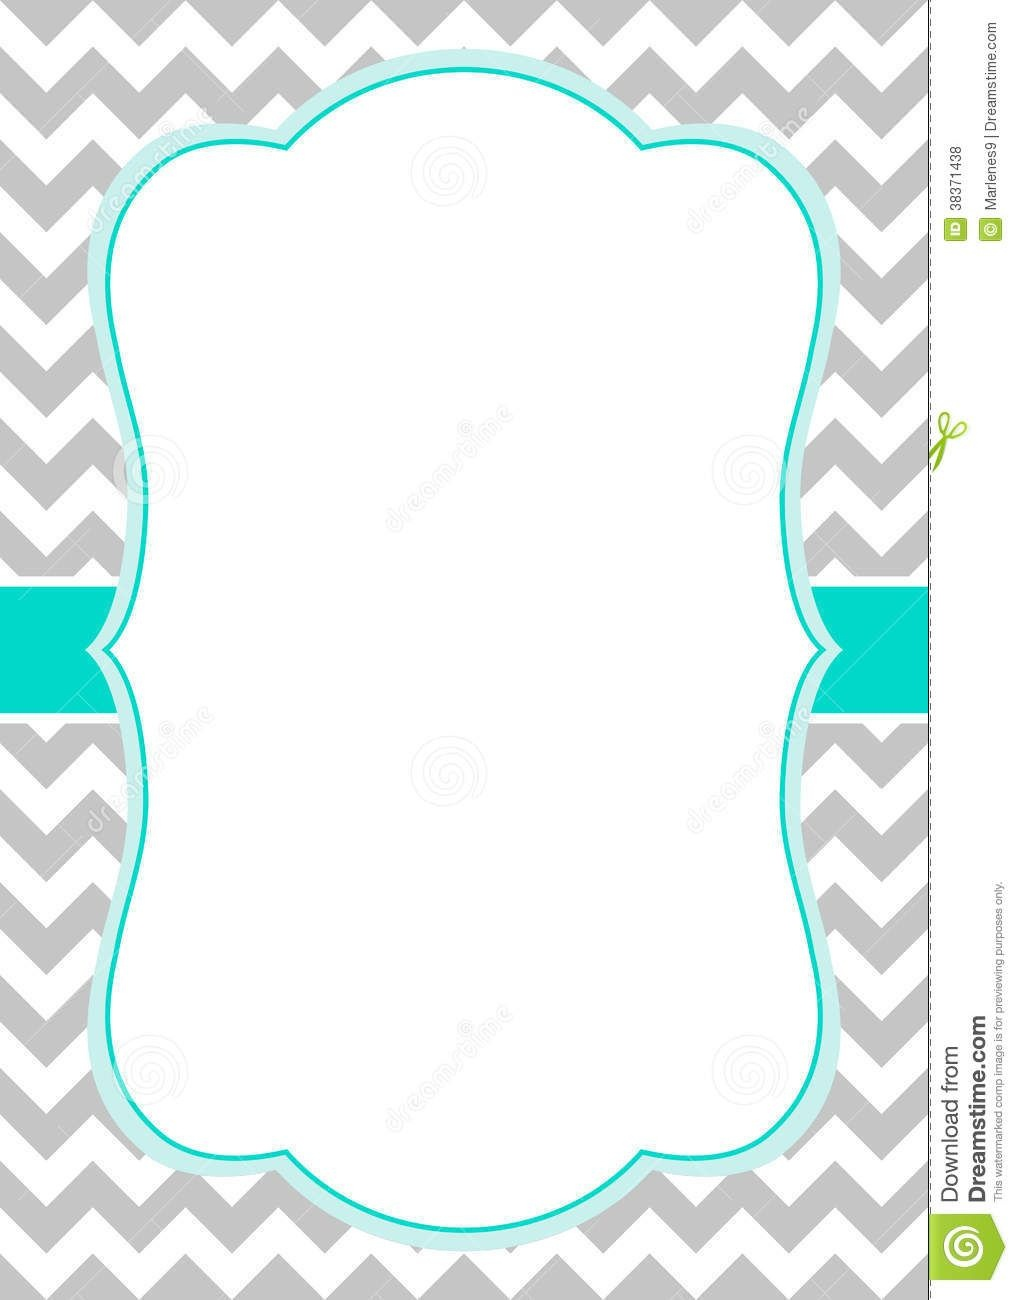 Free Chevron Border Templateadmin Admin | Baby Shower Ideas | Free - Chevron Pattern Printable Free